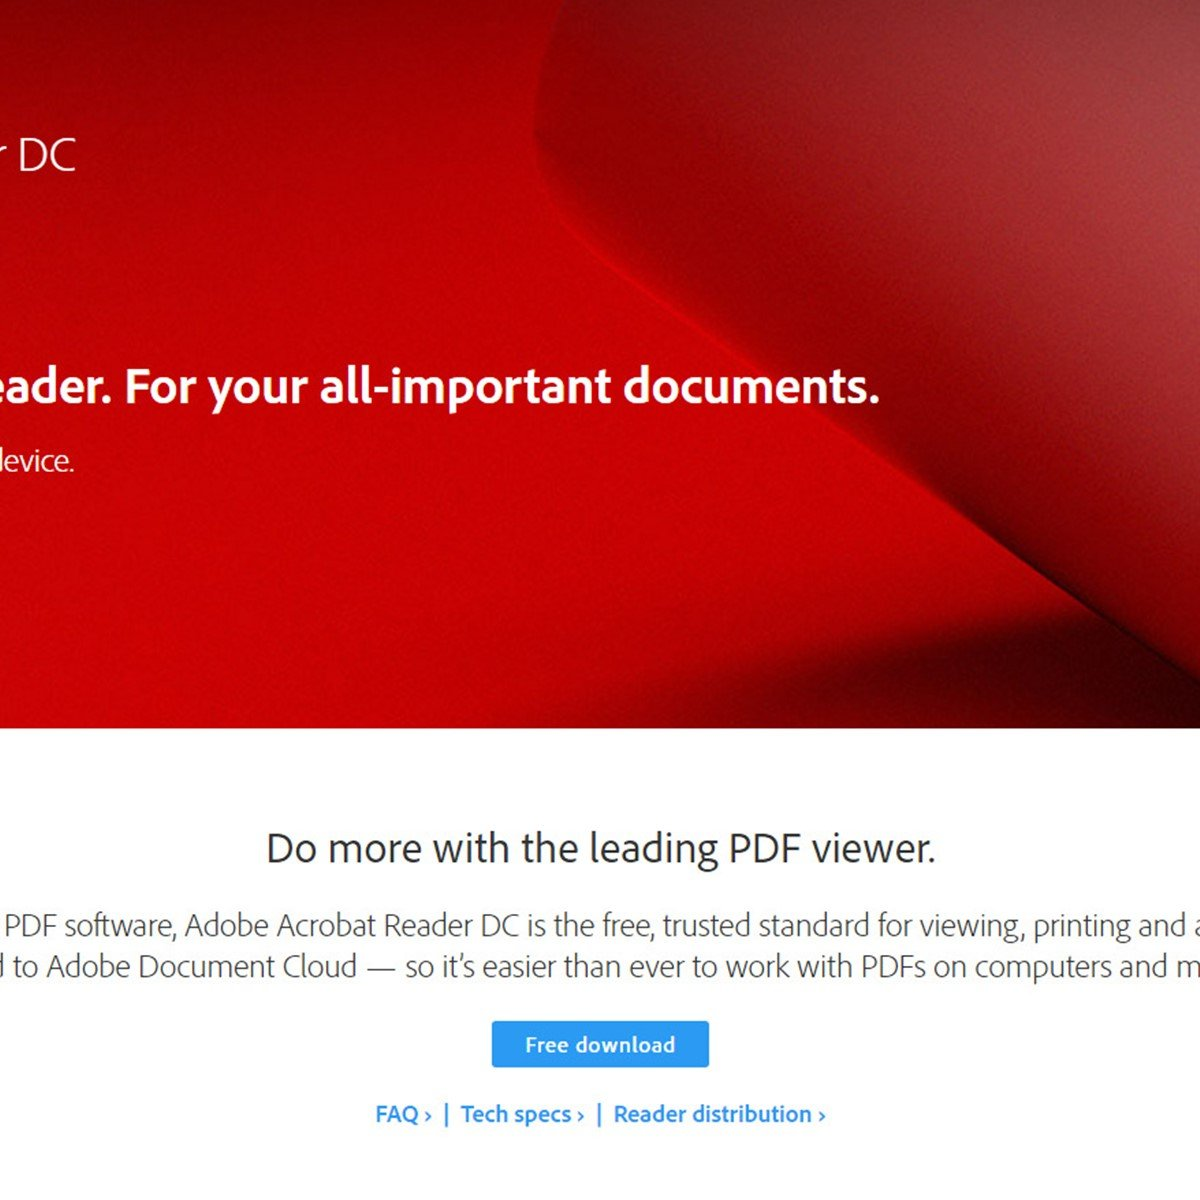 Adobe Acrobat Reader DC Alternatives and Similar Software